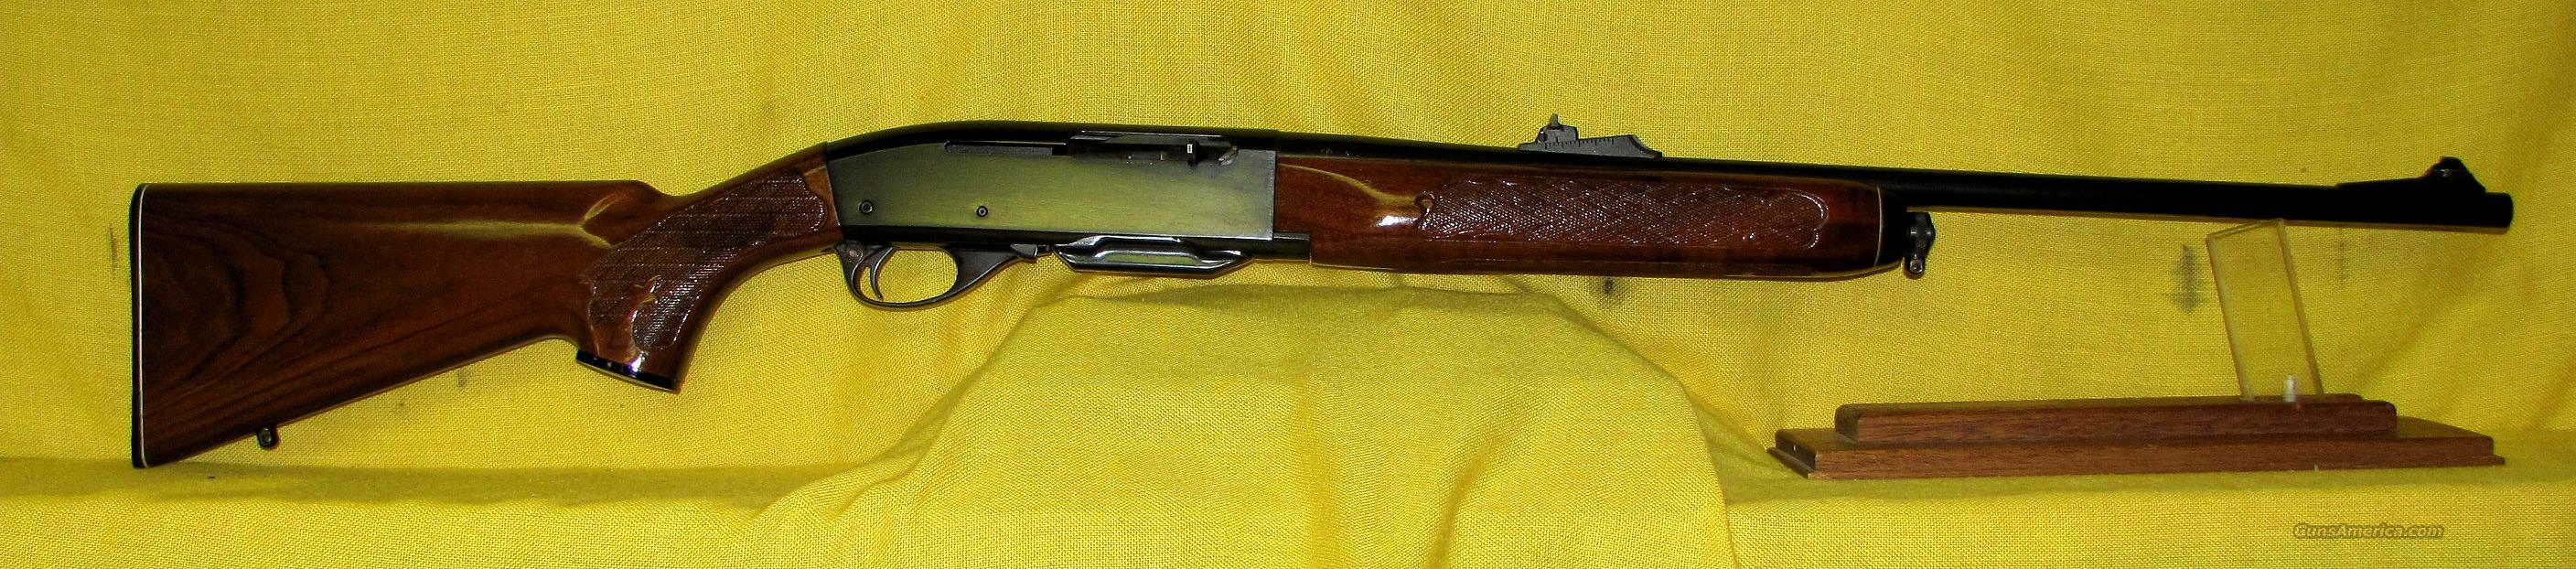 "REMINGTON 742 30/06 22"" BARREL  Guns > Rifles > Remington Rifles - Modern > Other"